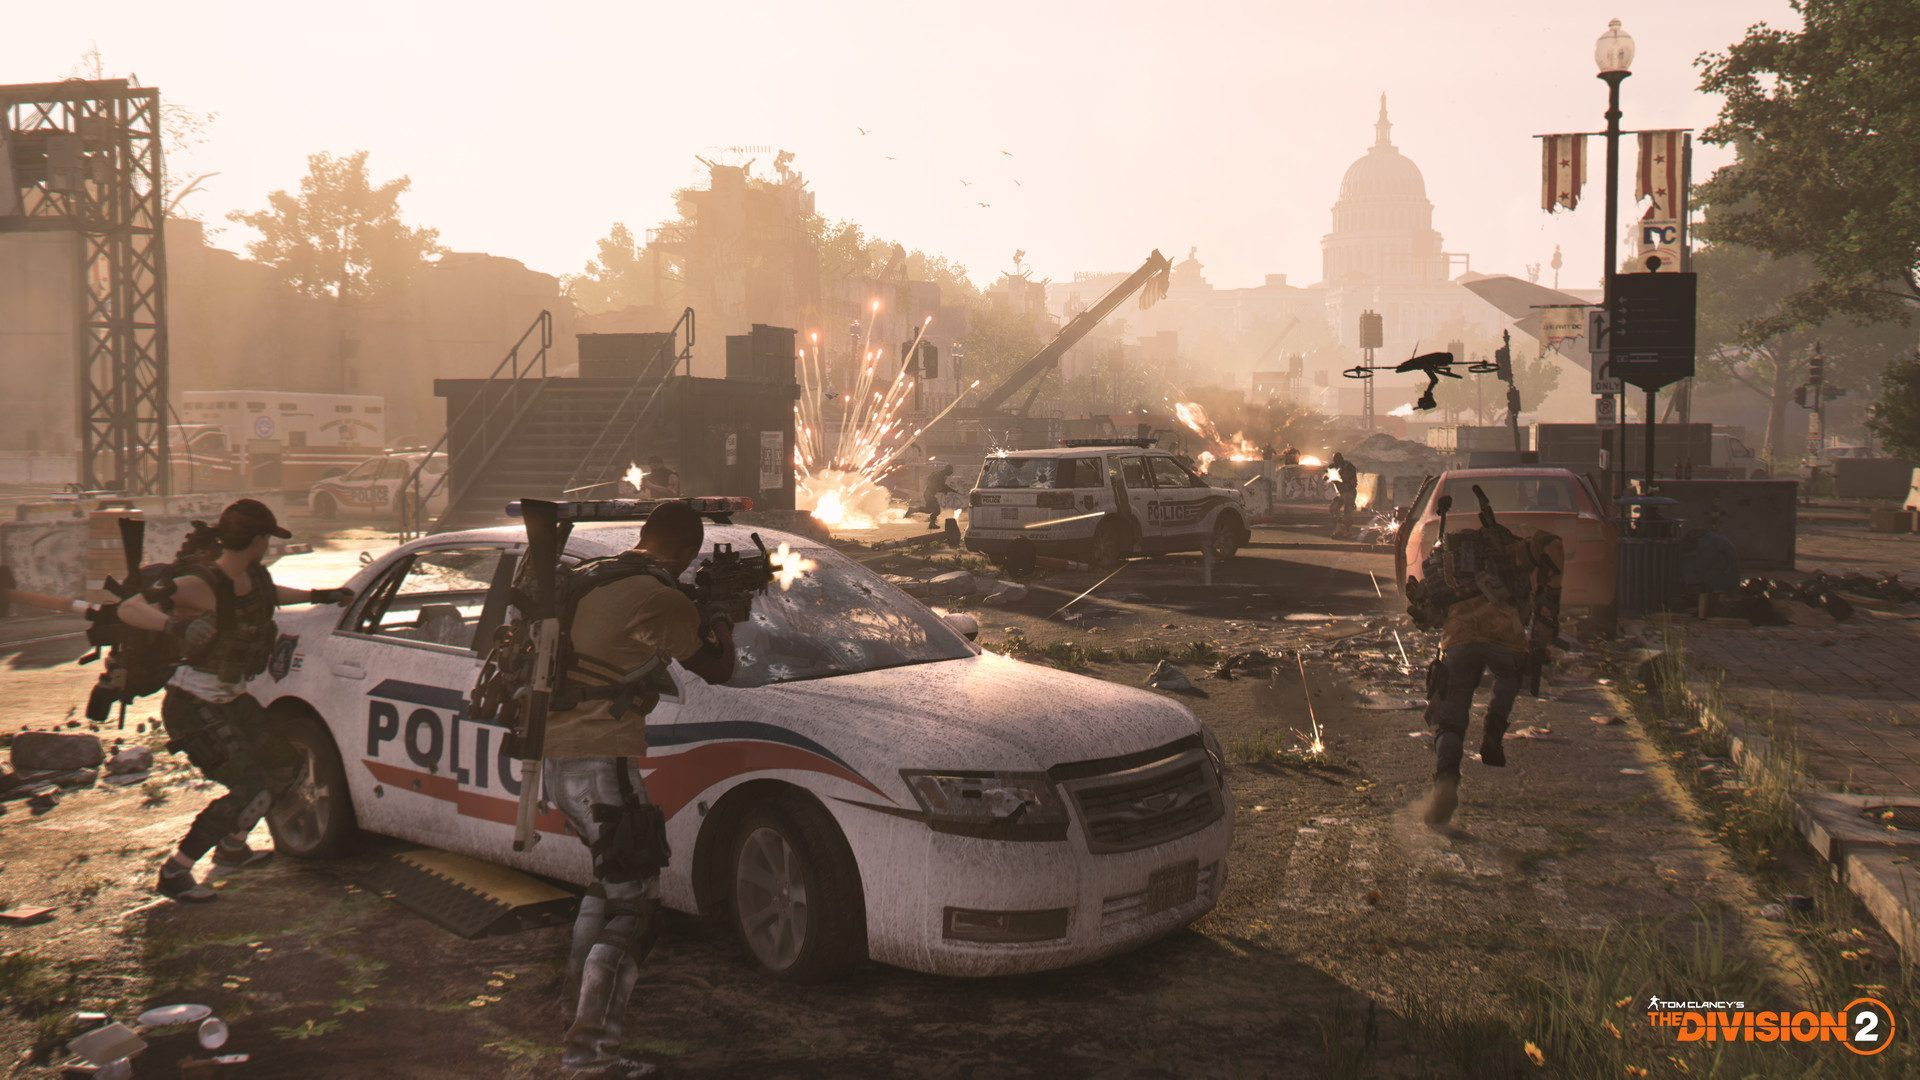 thedivision2_screen2